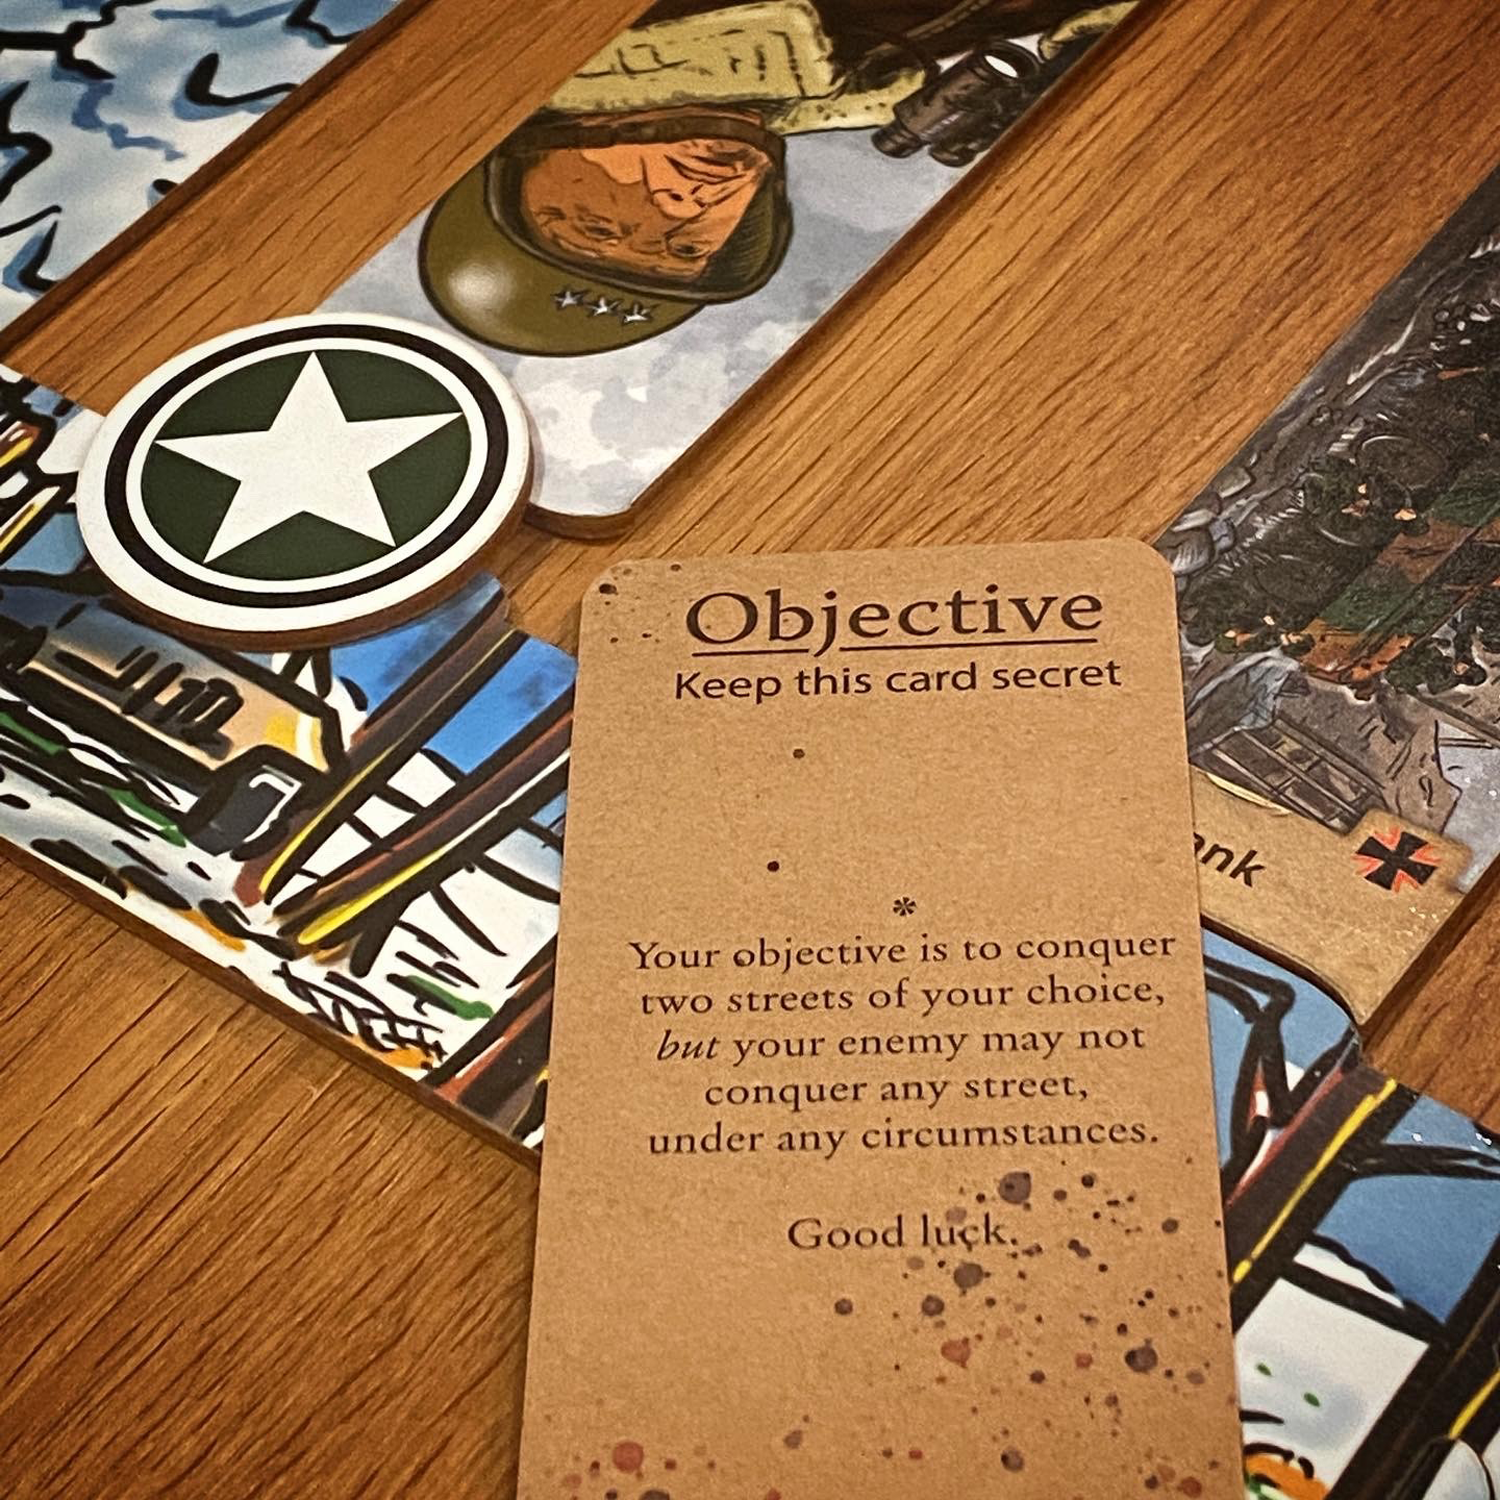 An objective card and defeat. Image © Board Game Review UK